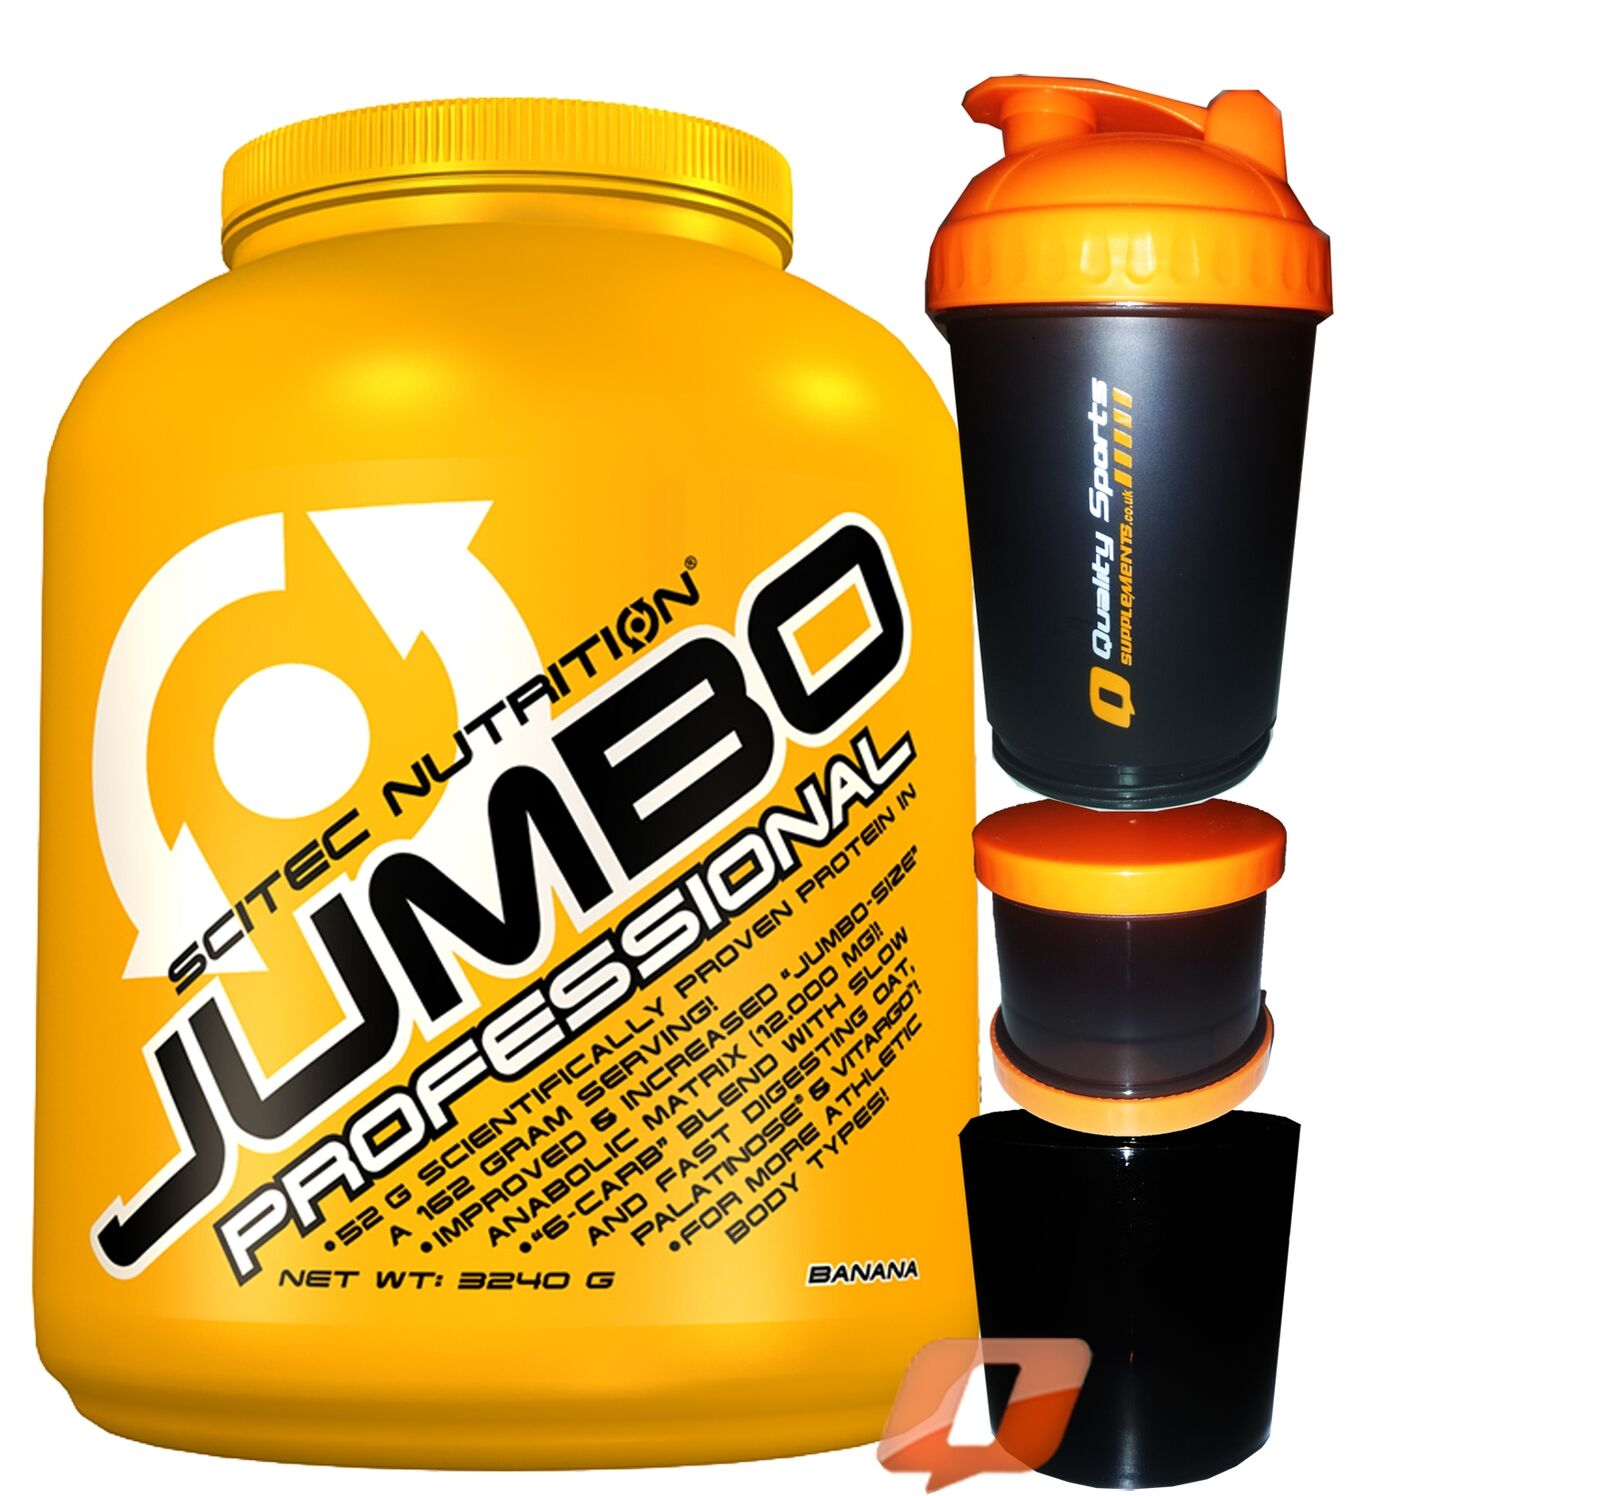 SciTec NUTRITION JUMBO PROFESSIONAL PROTEIN SHAKE WEIGHT GAINER BUILD MUSCLE PRO